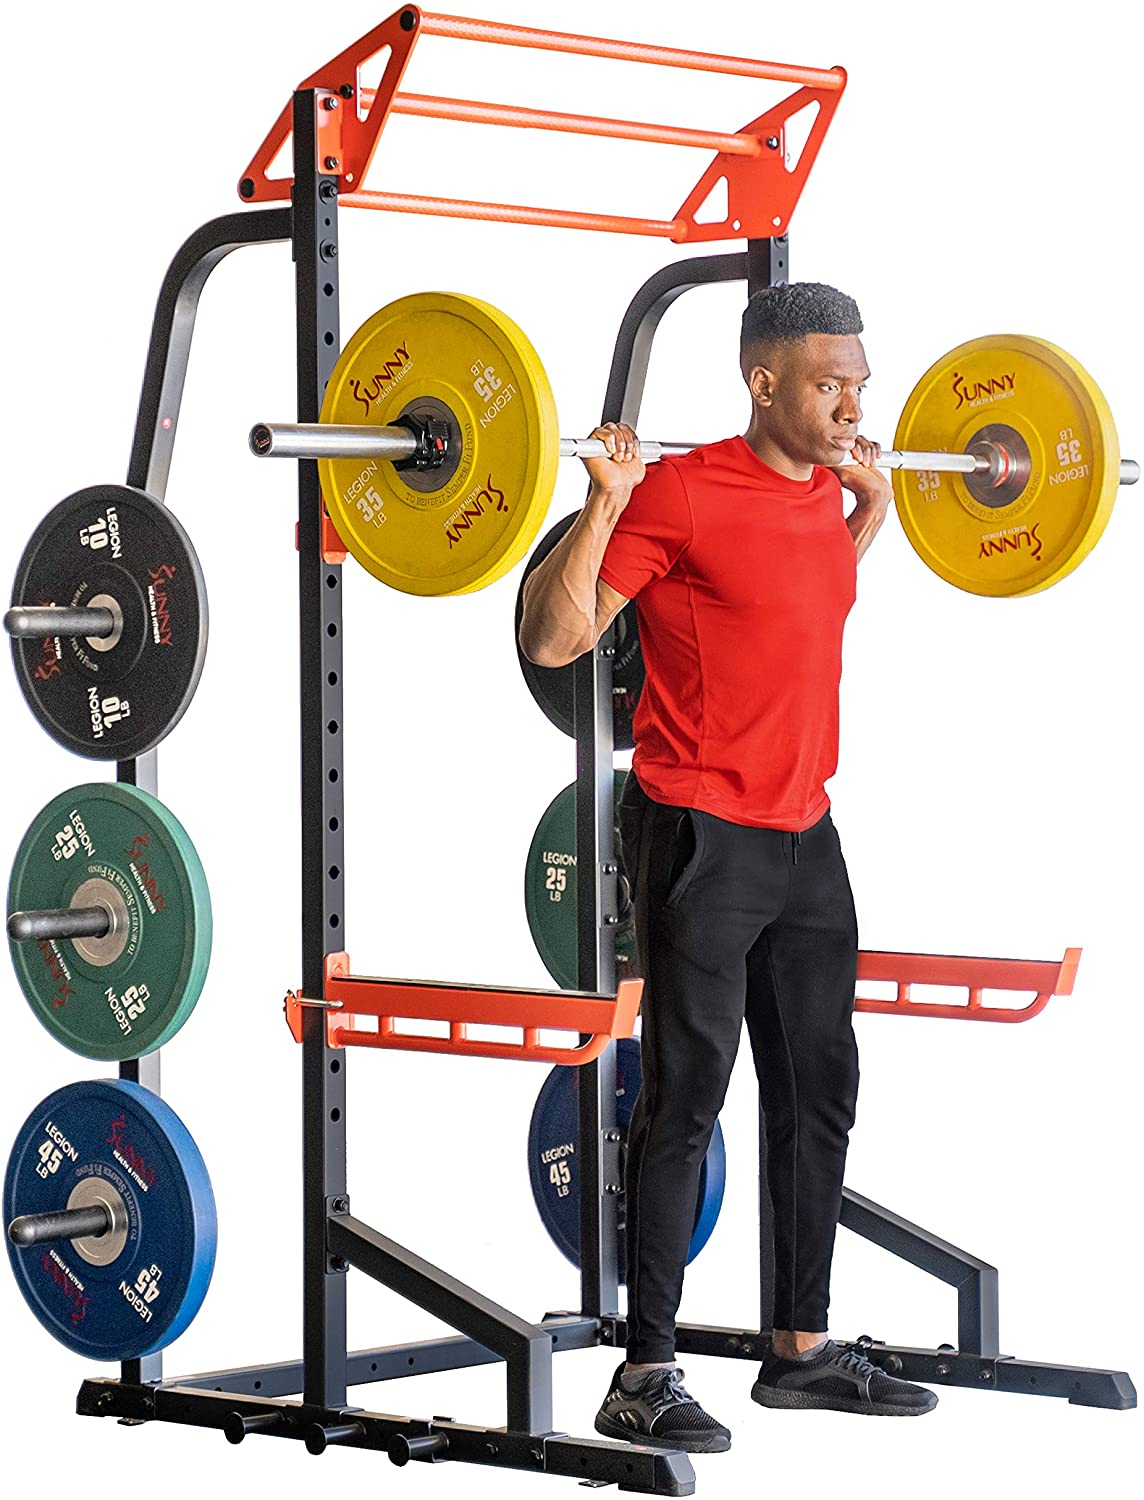 Sunny Health & Fitness Power Zone Half Rack Power Cage Review